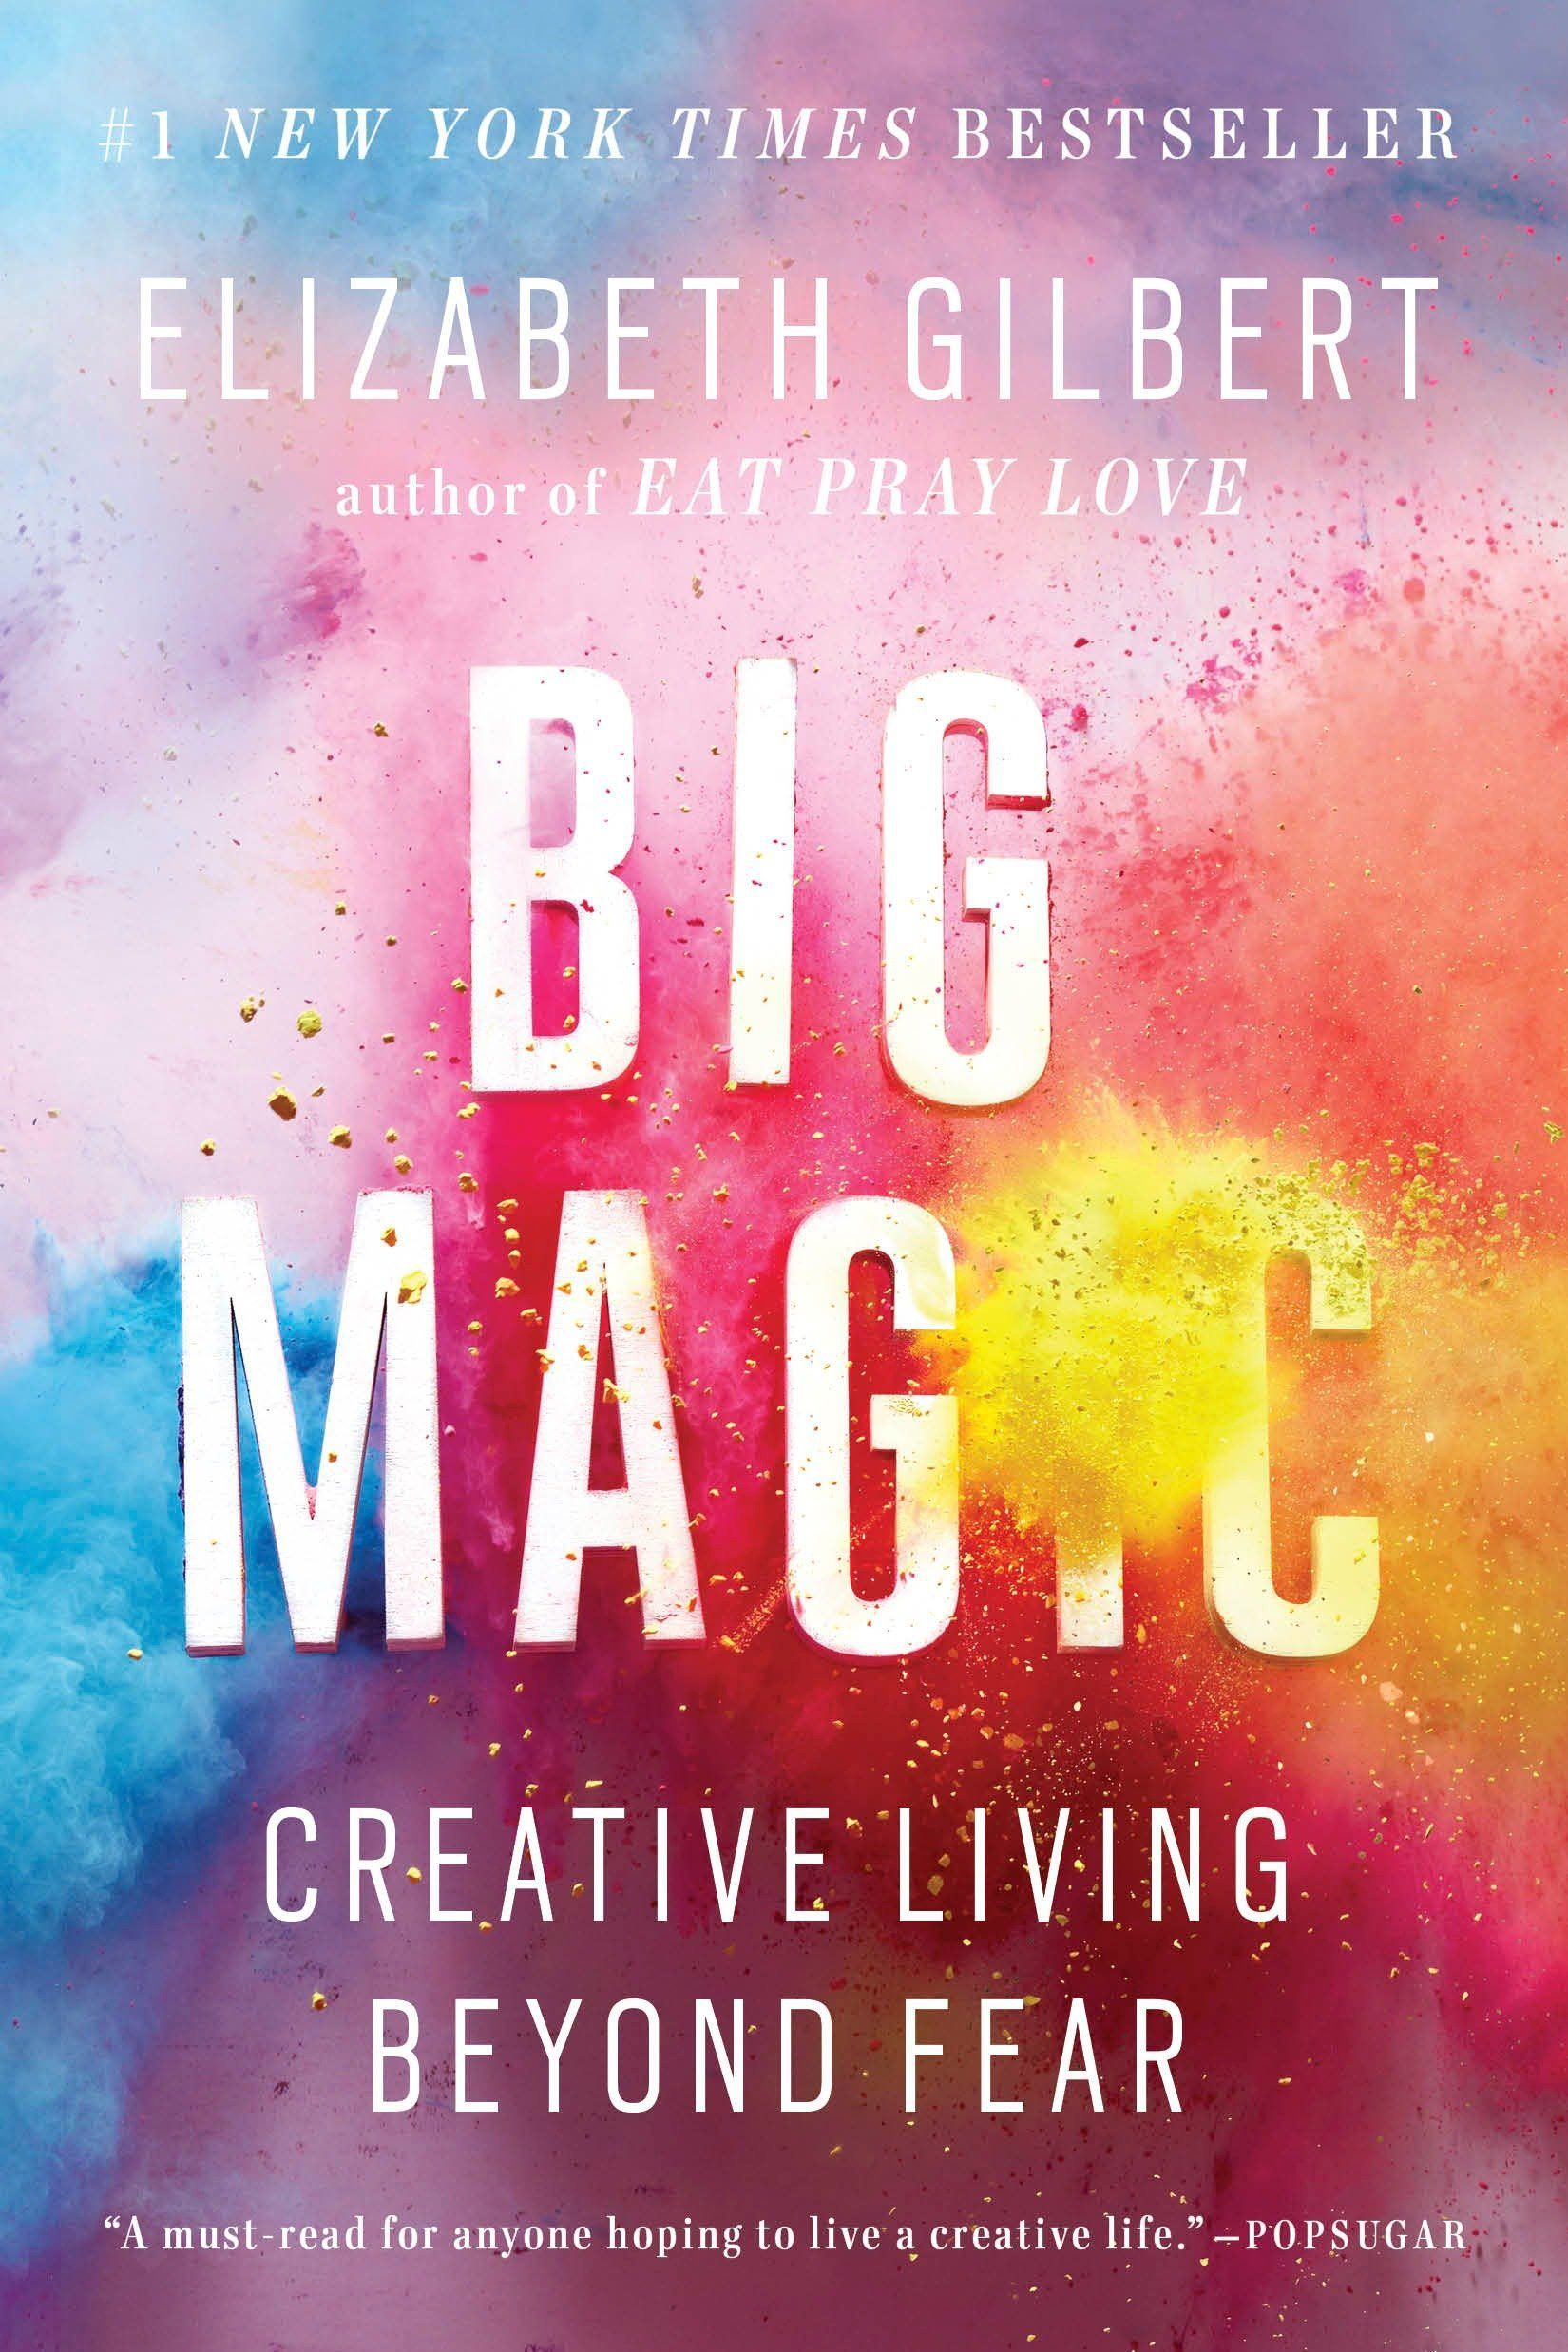 'Big Magic: Creative Living Beyond Fear' by Elizabeth Gilbert